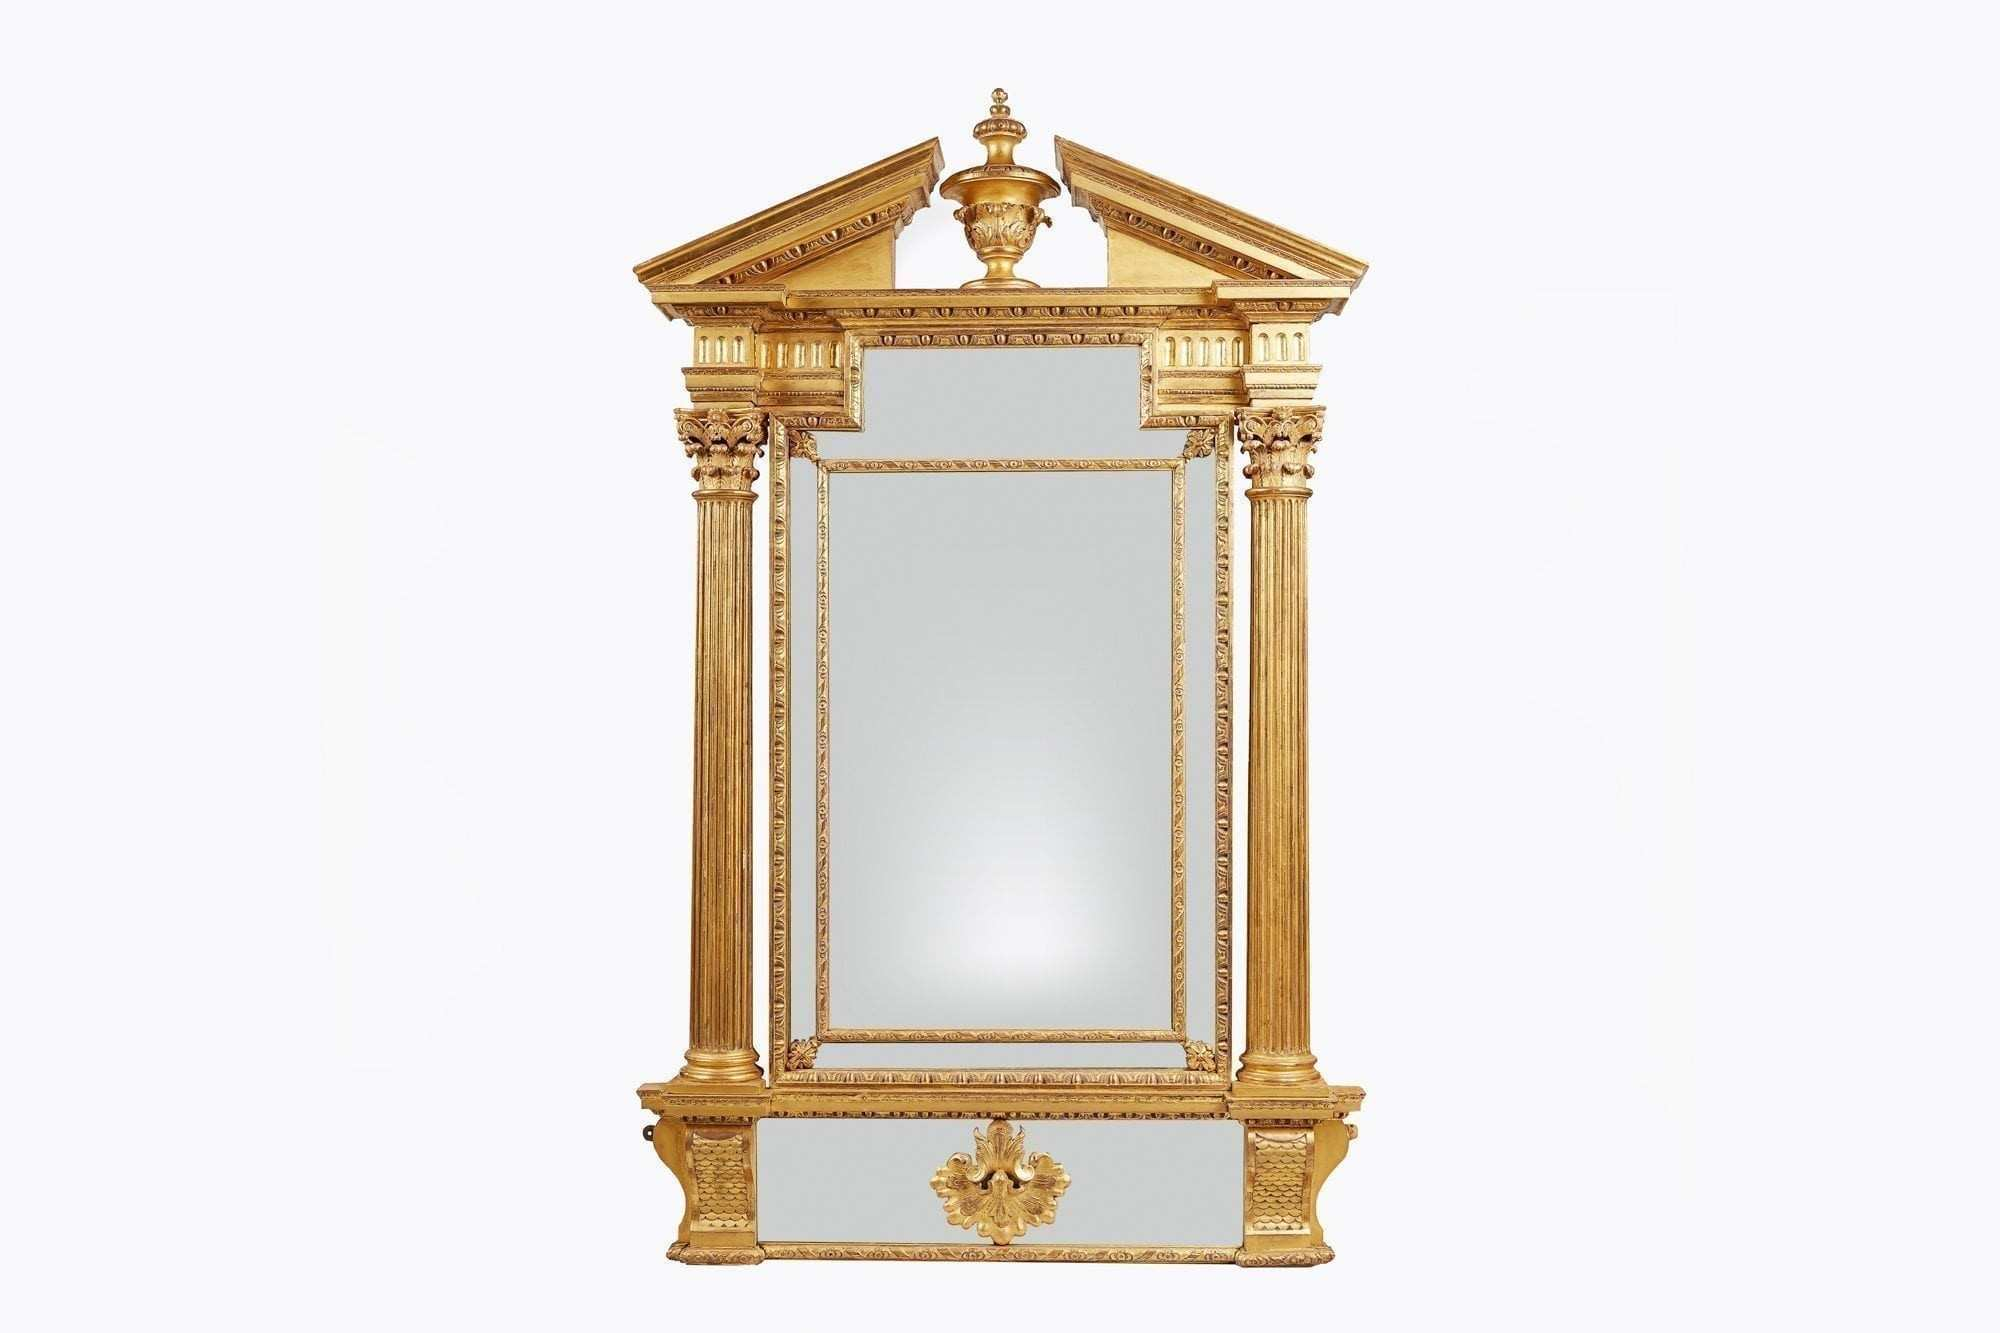 Early 19th Century Neoclassical Giltwood Mirror after Booker